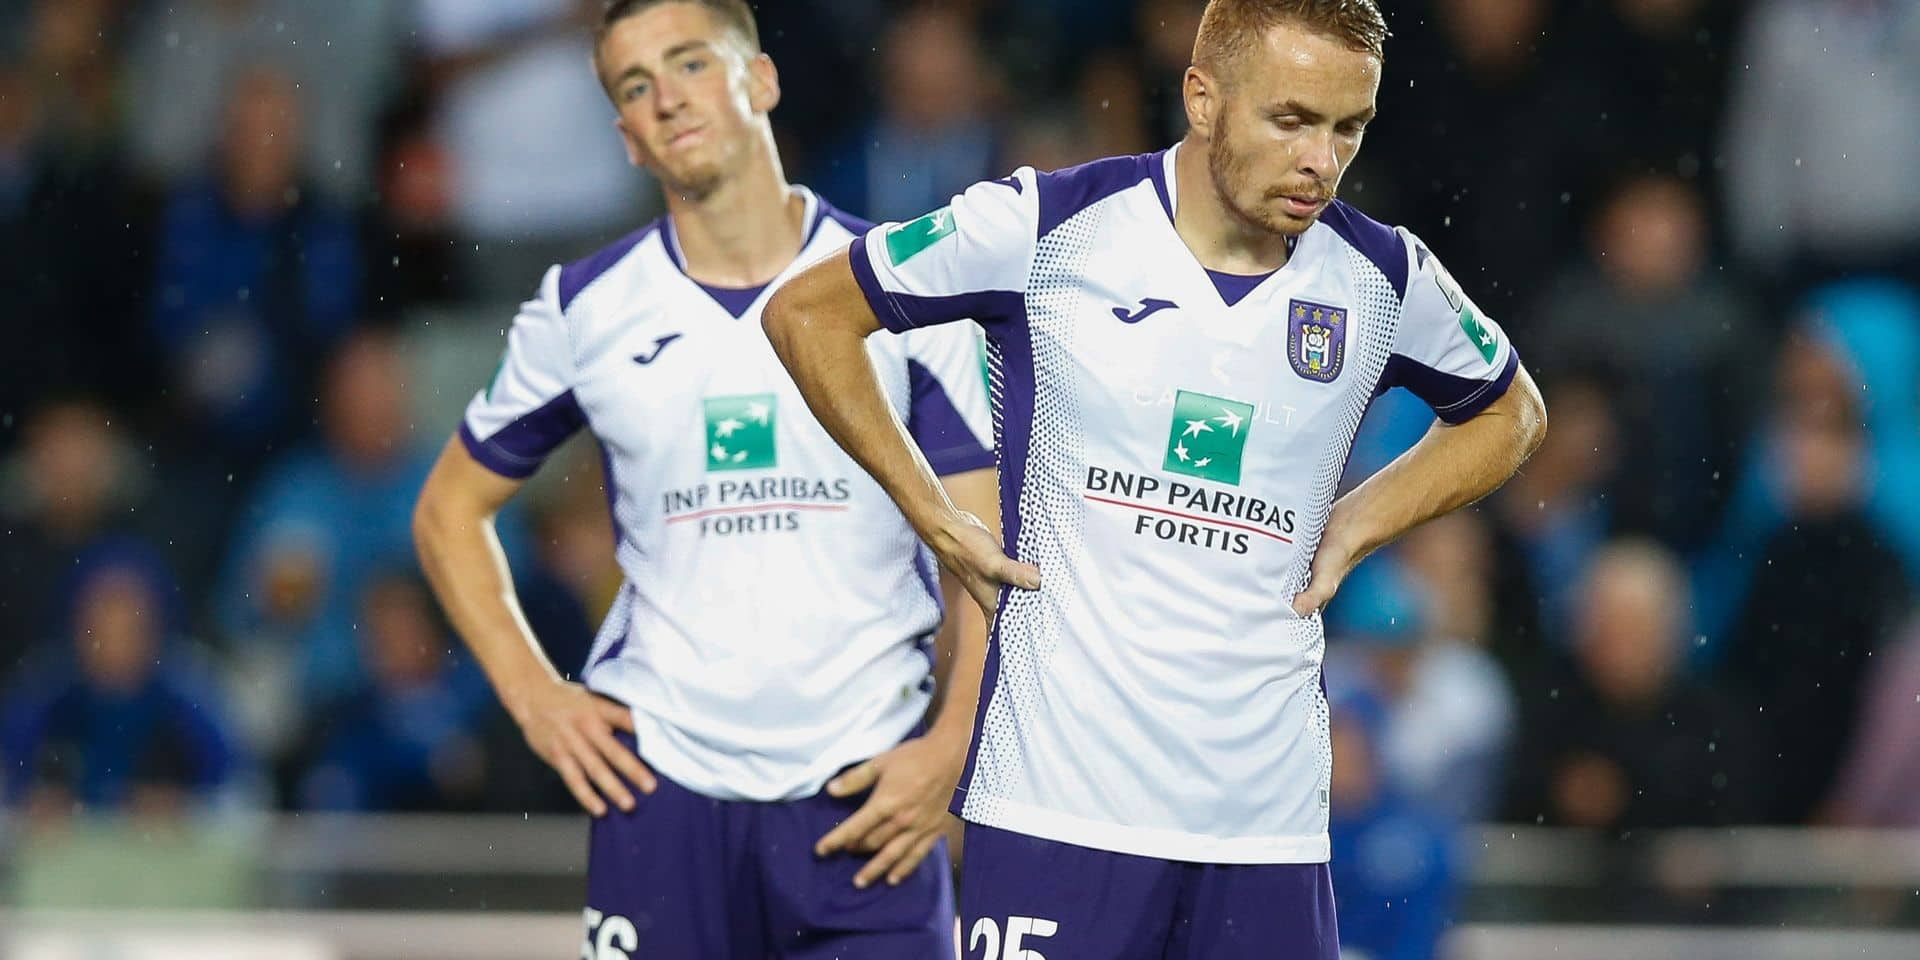 Club's players look dejected during a soccer match between Club Brugge KV and RSC Anderlecht, Sunday 22 September 2019 in Brugge, on day eight of the 'Jupiler Pro League' Belgian soccer championship season 2019-2020. BELGA PHOTO BRUNO FAHY